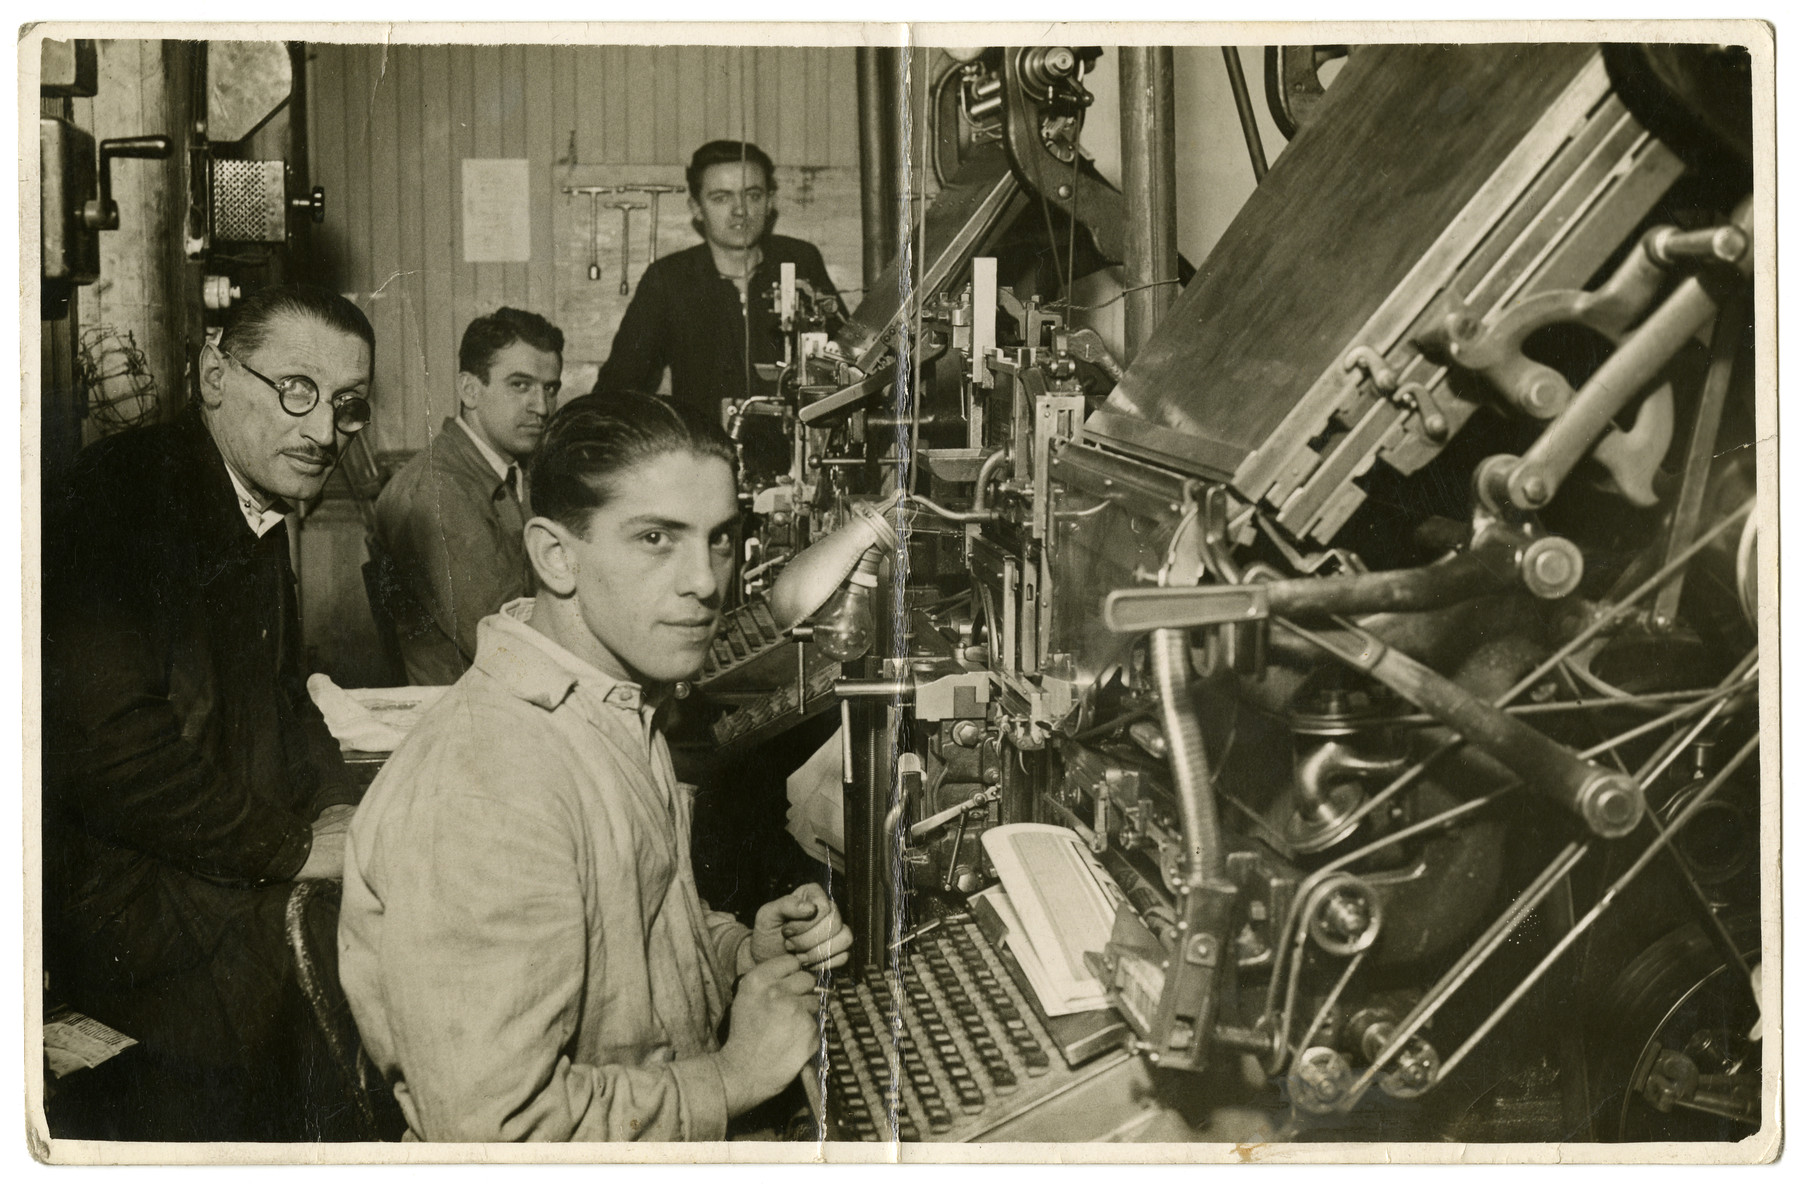 Workers operate the presses of the Goldstuecker printing press owned and operated by the Gero family.  Akos Gero is pictured in the back, second from the left in a grey coat.